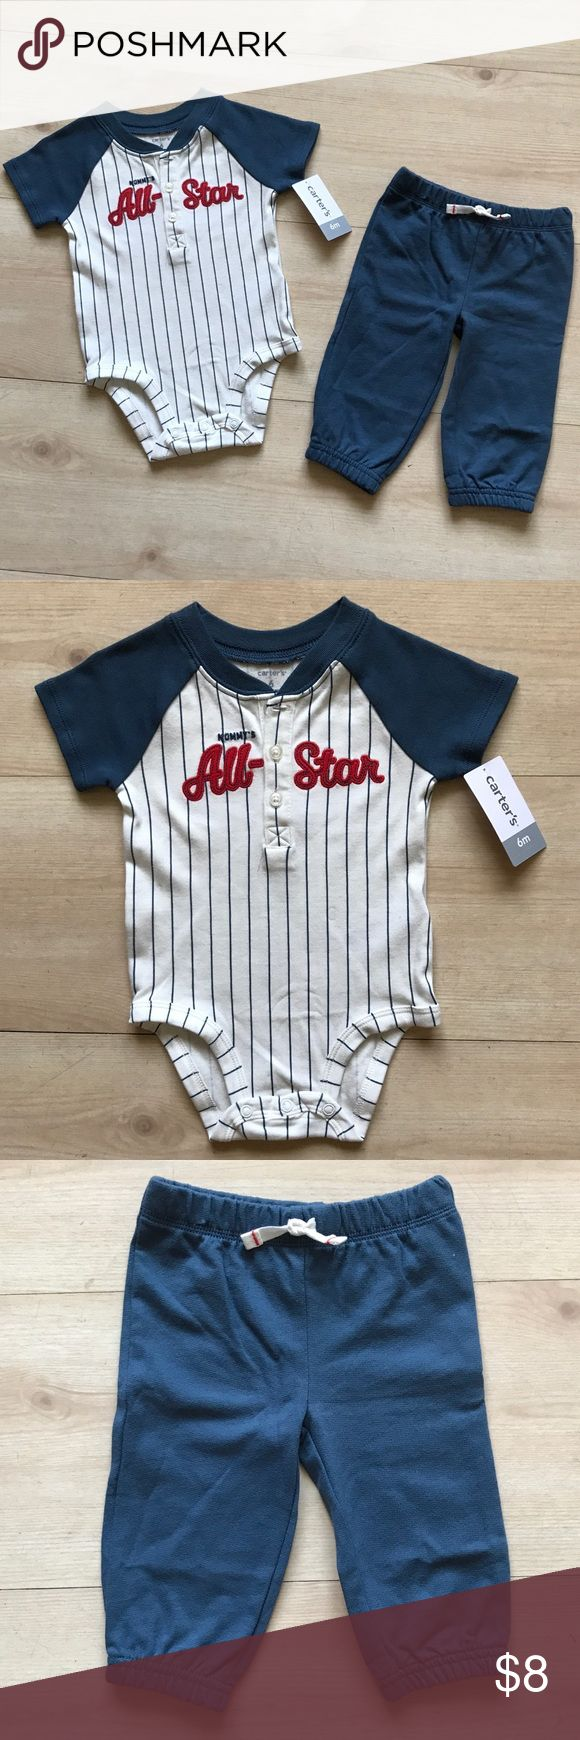 Carters Base Ball Outfit  ⚾️ Baseball ⚾️ lovers. Adorable outfit makes baby ready for the game.  Dad will be so proud to see his little one look so cute!     NWT Carters Matching Sets